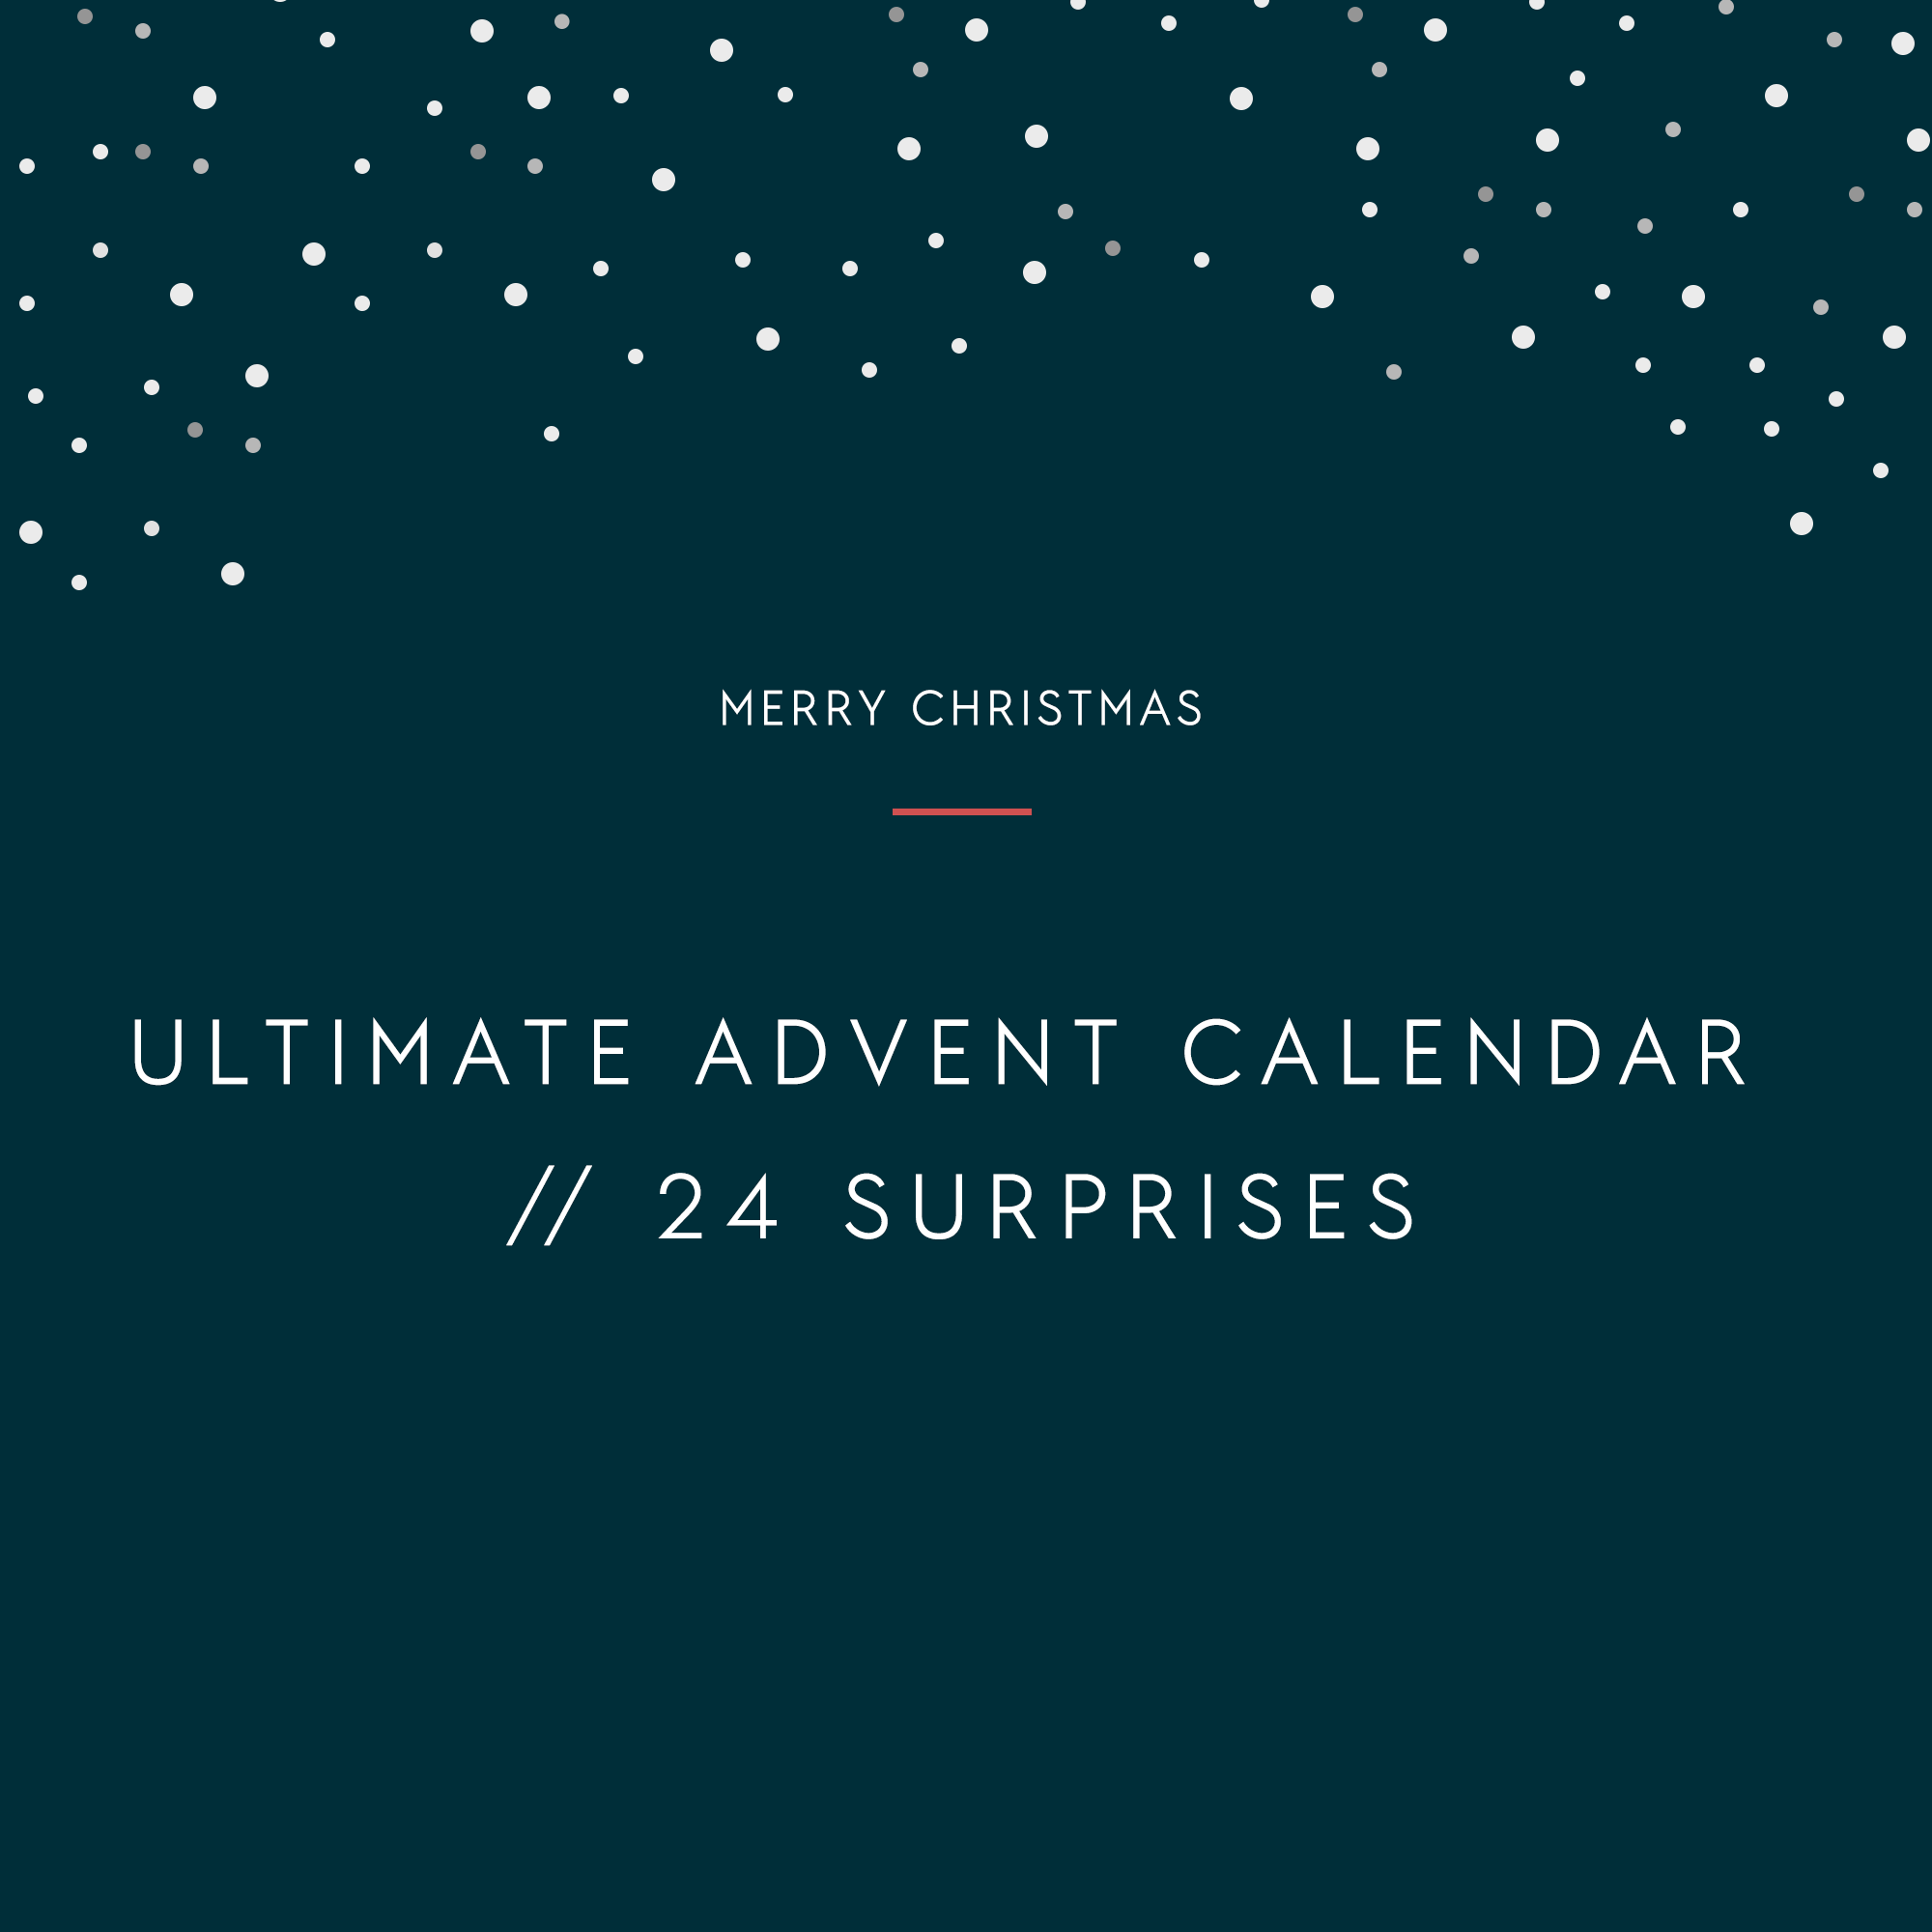 ULTIMATE ADVENT CALENDAR 2019 // 24 SURPRISES